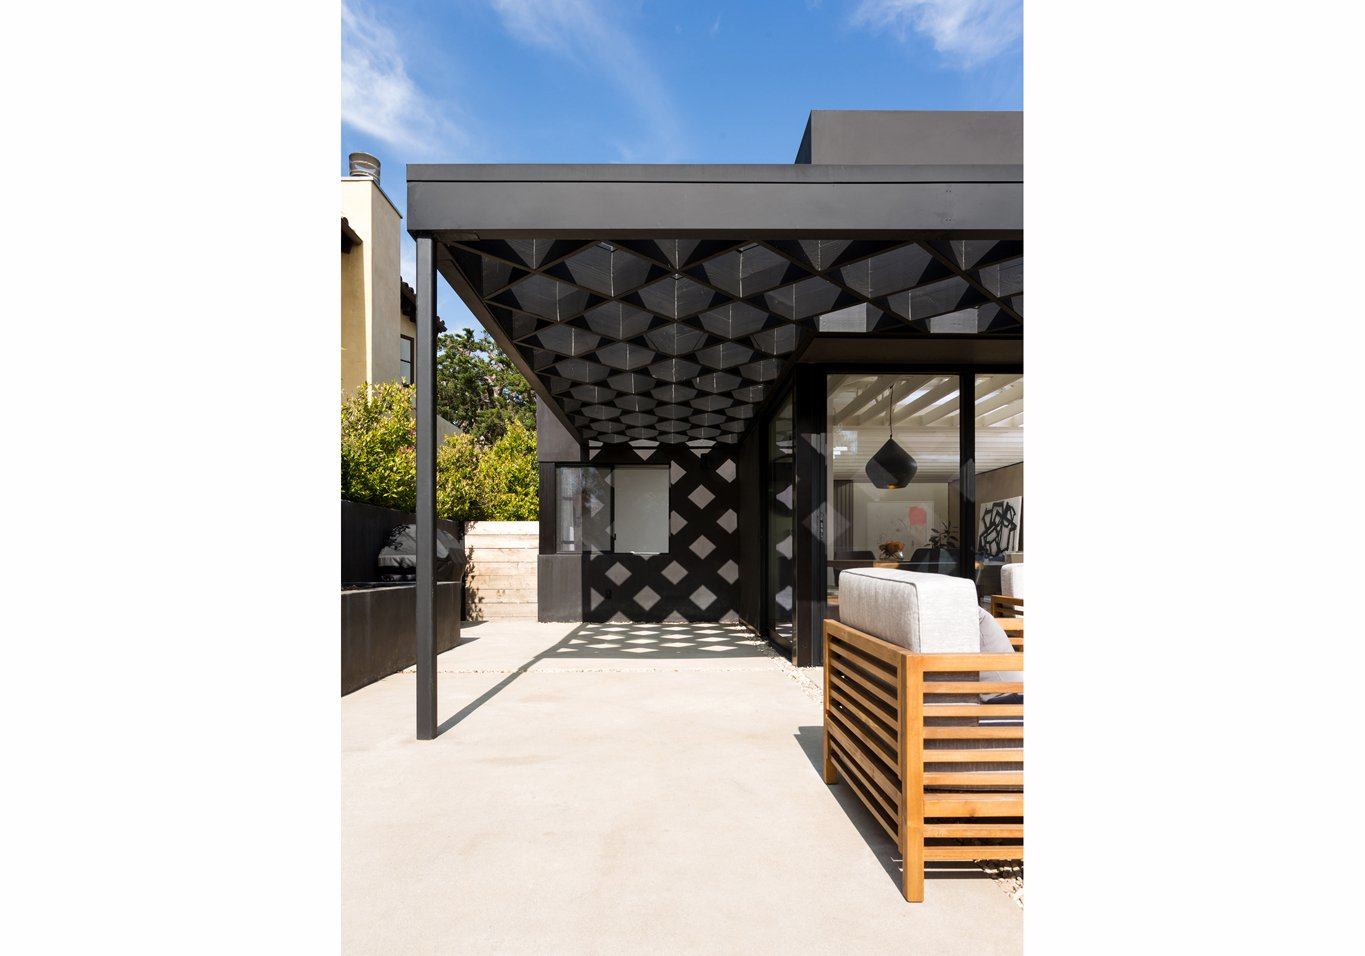 Outdoor, Hardscapes, Side Yard, Shrubs, Walkways, Wood, Concrete, Decomposed Granite, Horizontal, Wood, Landscape, and Planters Shadows of the pergola at rear yard patio  Outdoor Side Yard Concrete Wood Wood Photos from Las Casas Residence